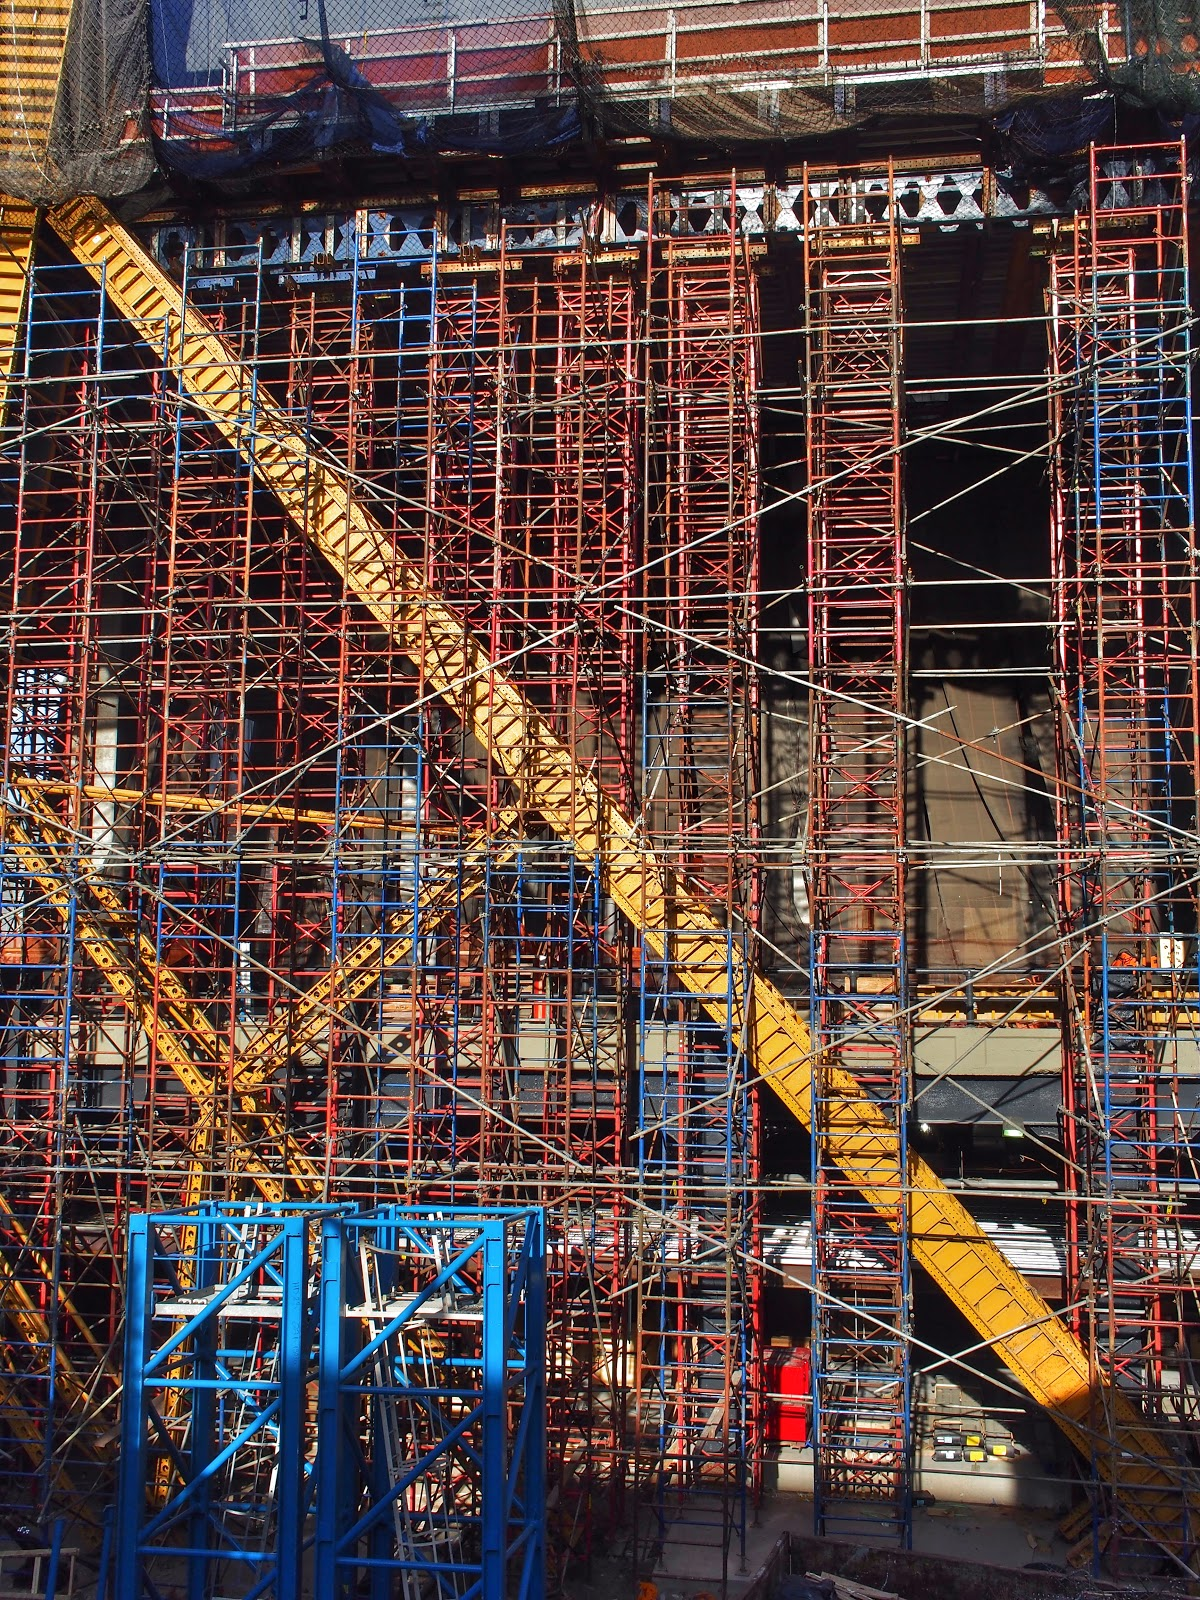 Scaffolding in Primary Colors #scaffoldinginprimarycolors #scaffolding #construction #nyc #hudsonyard 2014